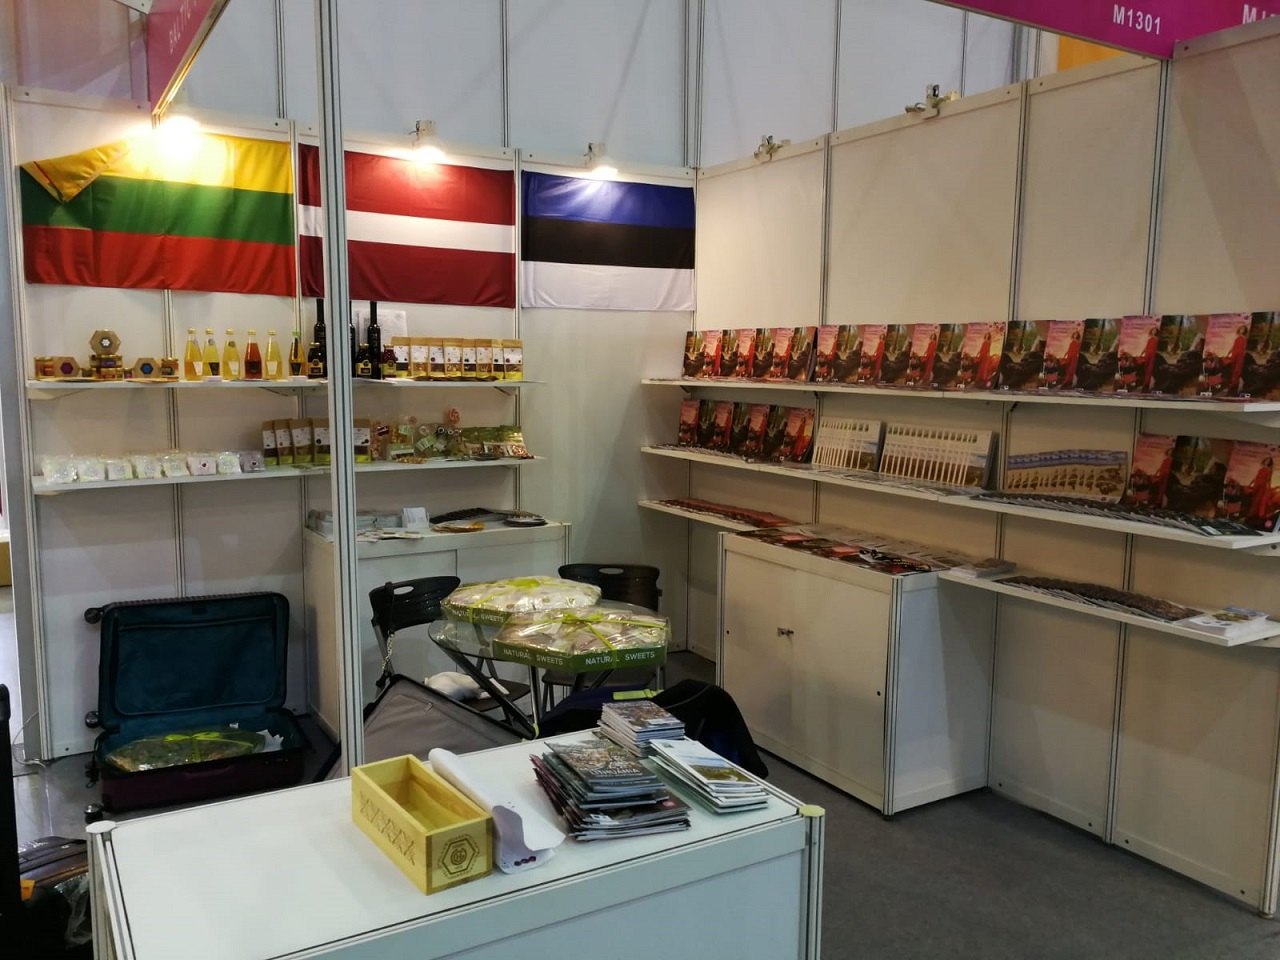 Food product samples and brochures from the Baltics are displayed in the pavilion